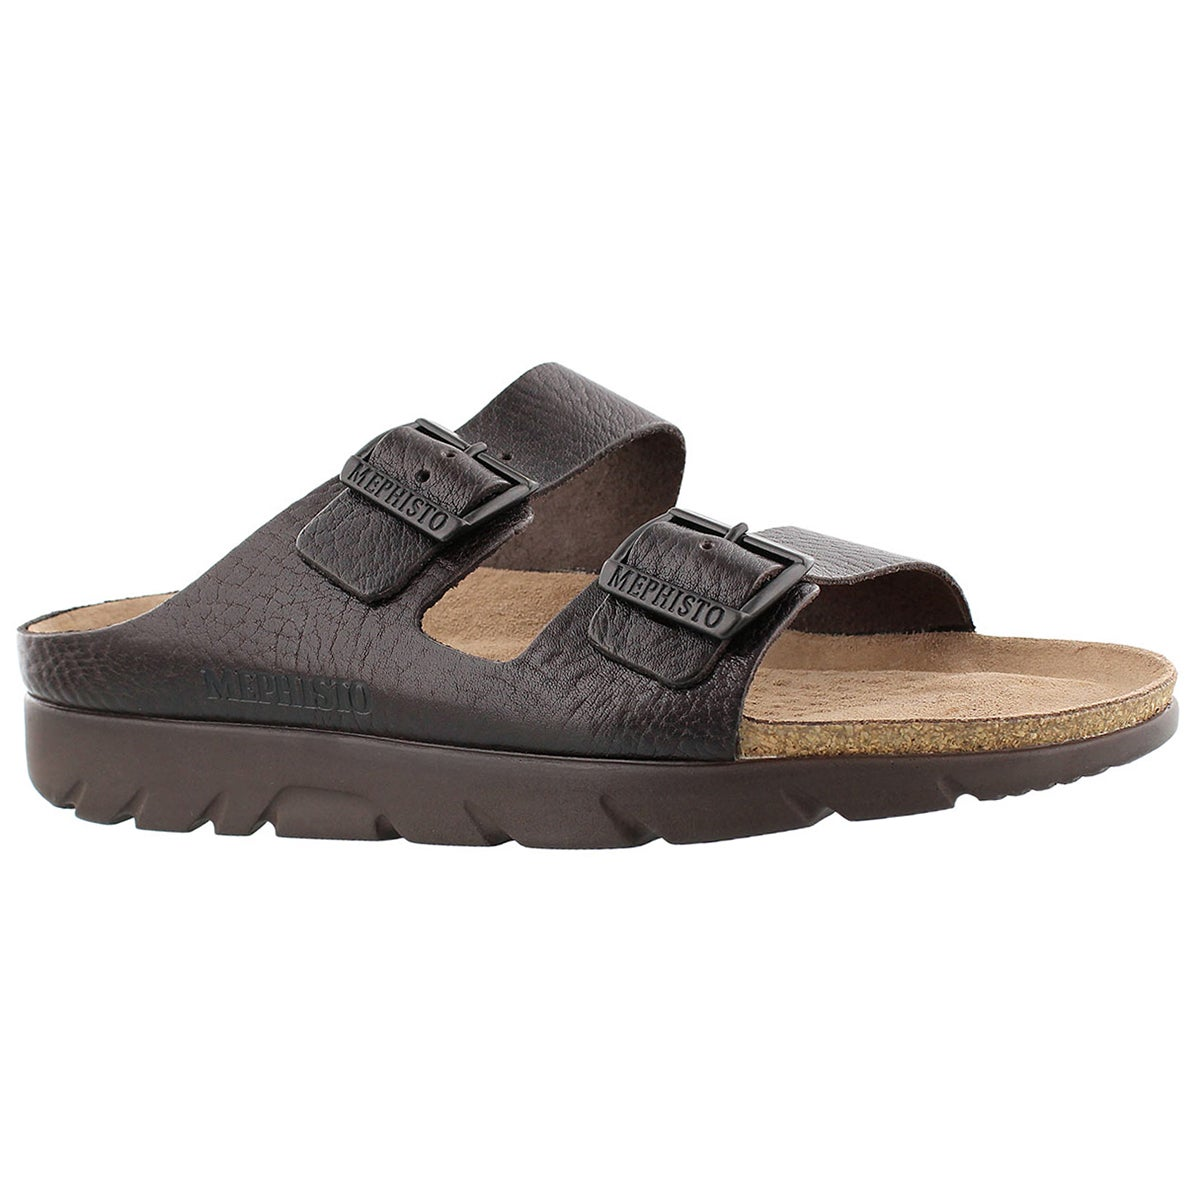 Men's ZONDER dark brown cork footbed sandals